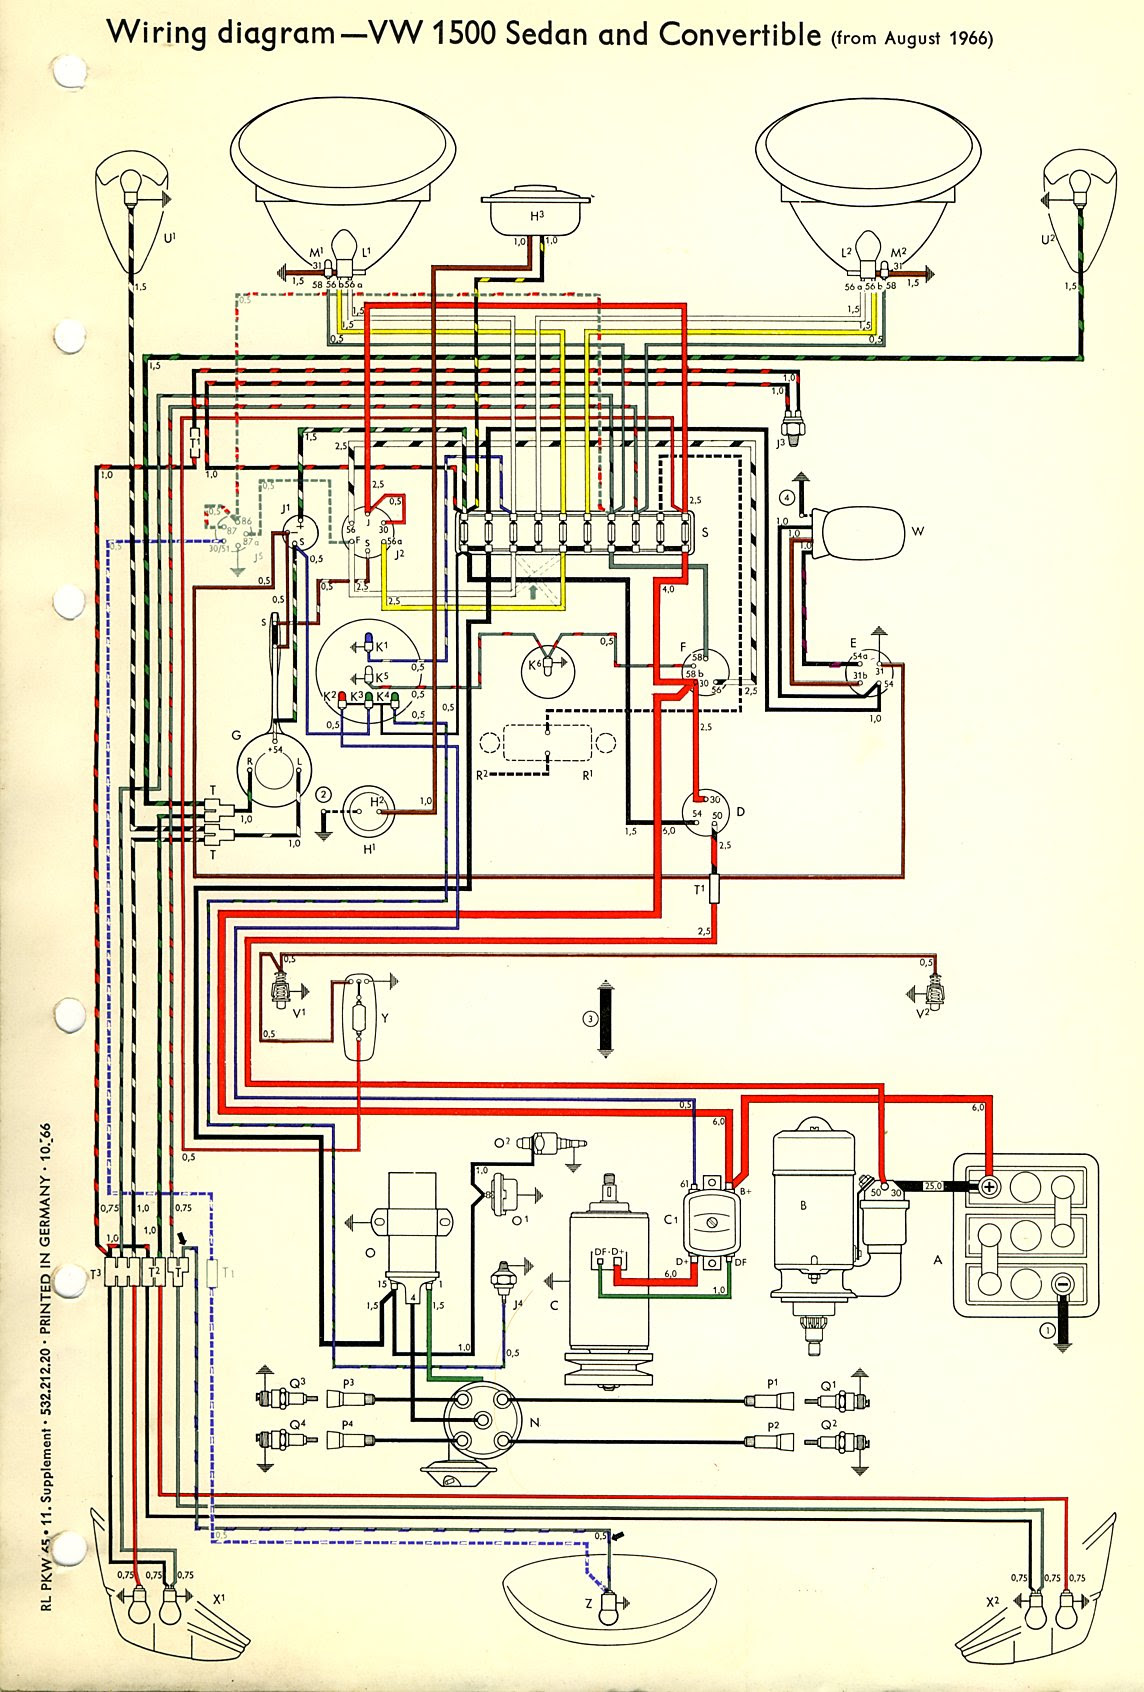 Diagram 1968 Beetle Wiring Diagram Full Version Hd Quality Wiring Diagram Diagramstana Dolcialchimie It